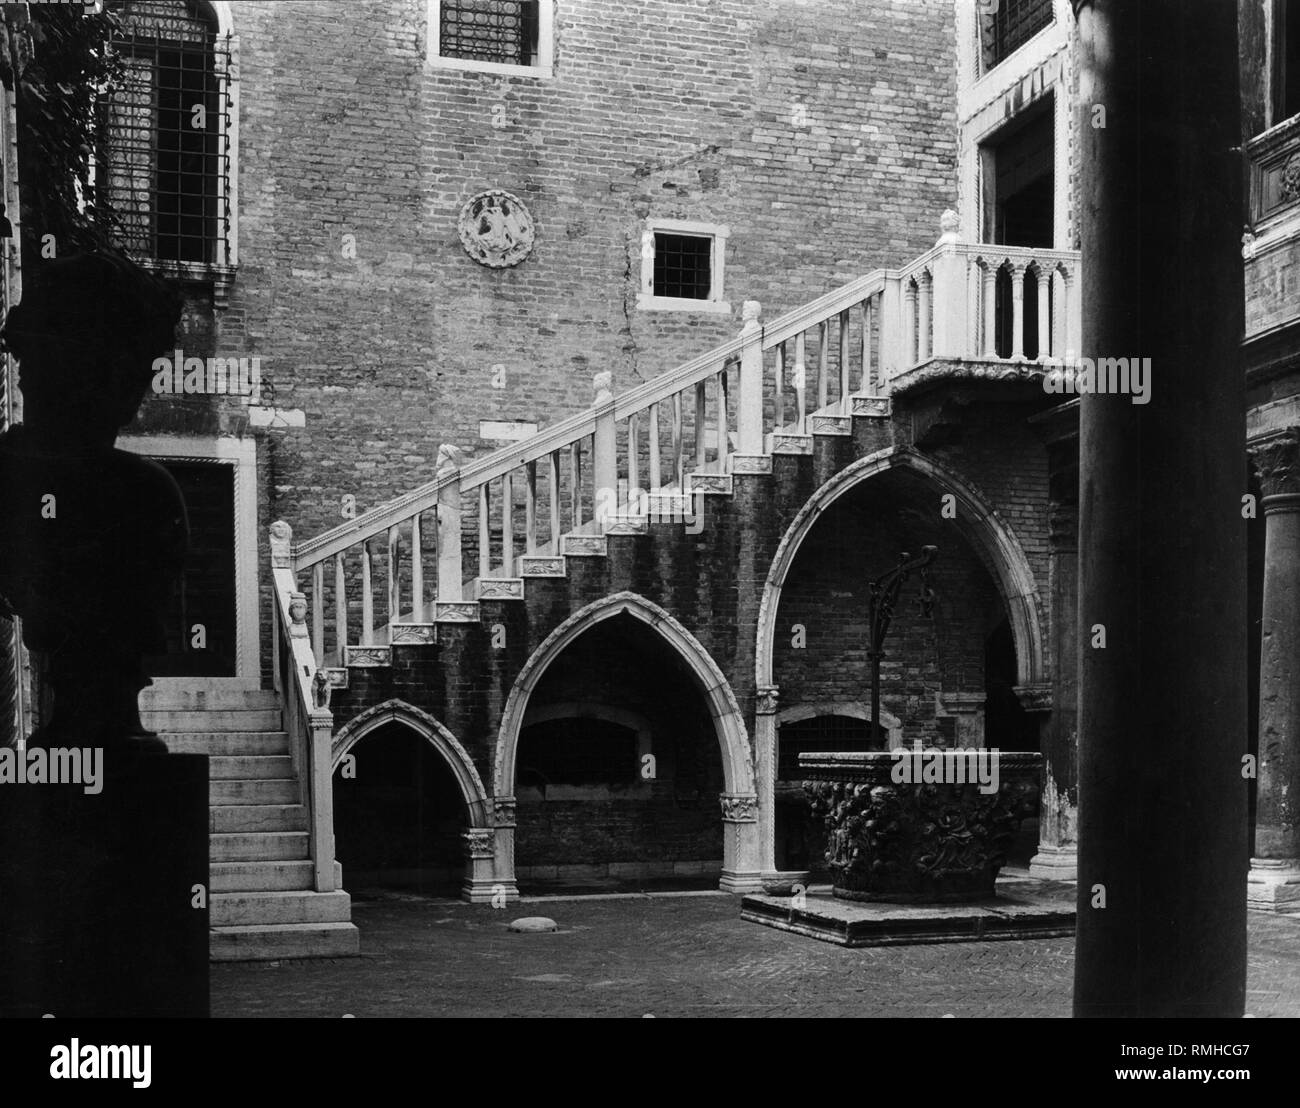 Venetian staircase from the 15th century in a courtyard. - Stock Image